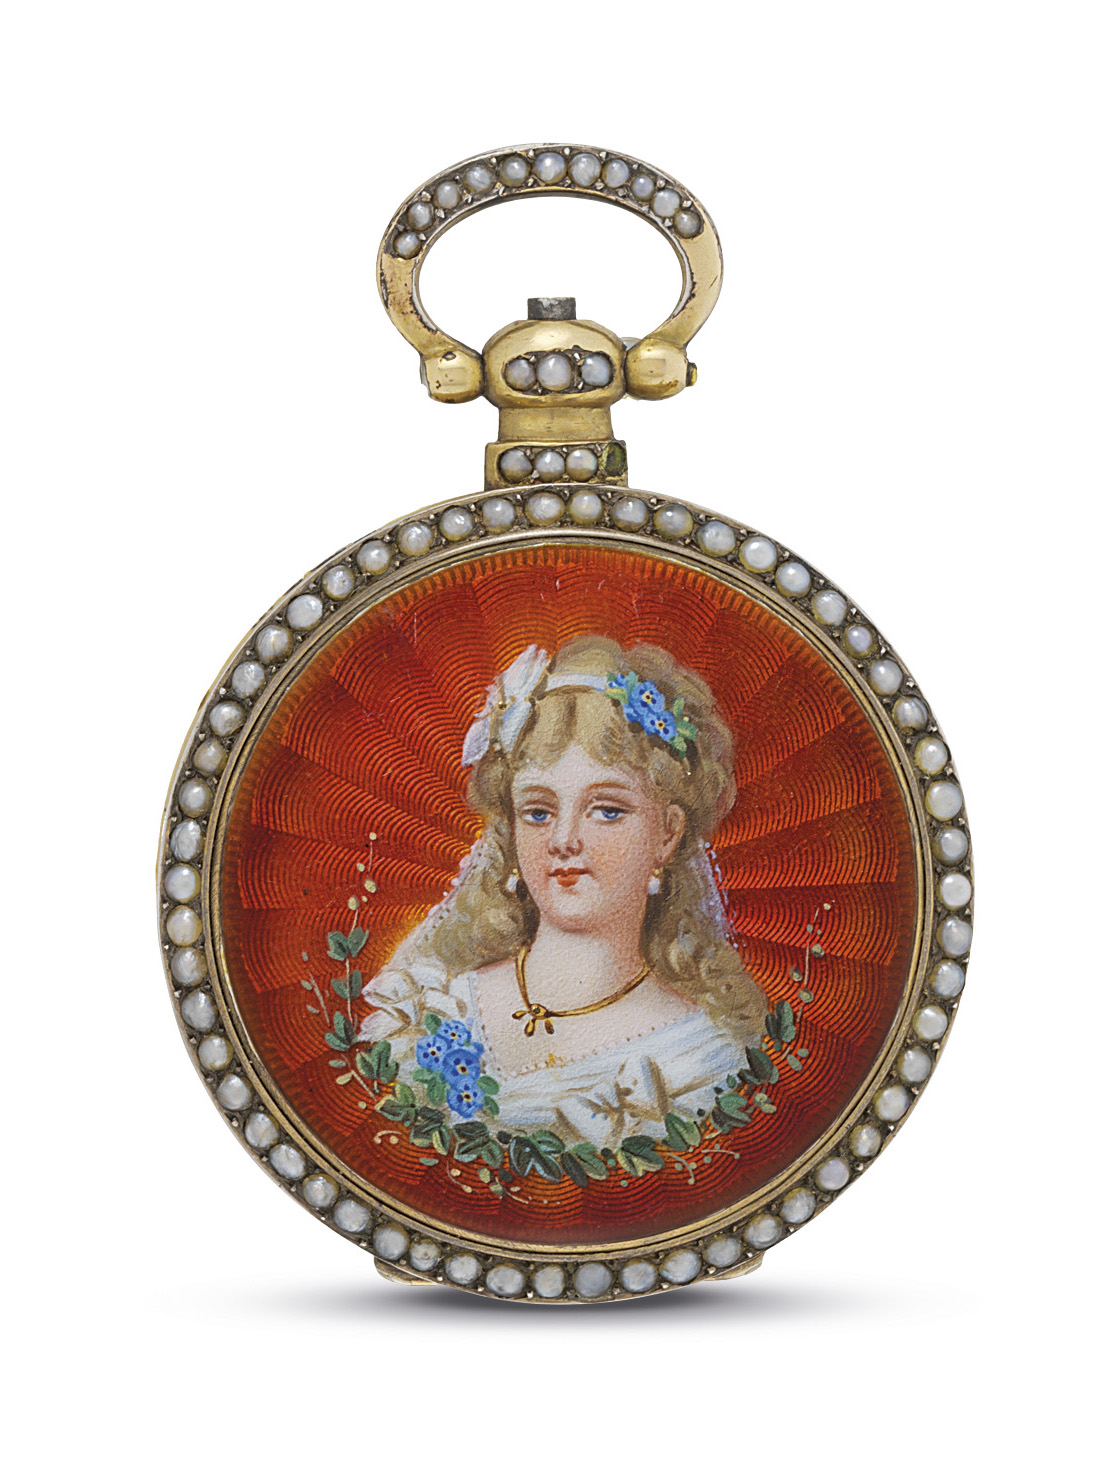 GUINAND. A SILVER GILT, ENAMEL AND PEARL-SET LEVER WATCH WITH CENTRE SECONDS, MADE FOR THE CHINESE MARKET